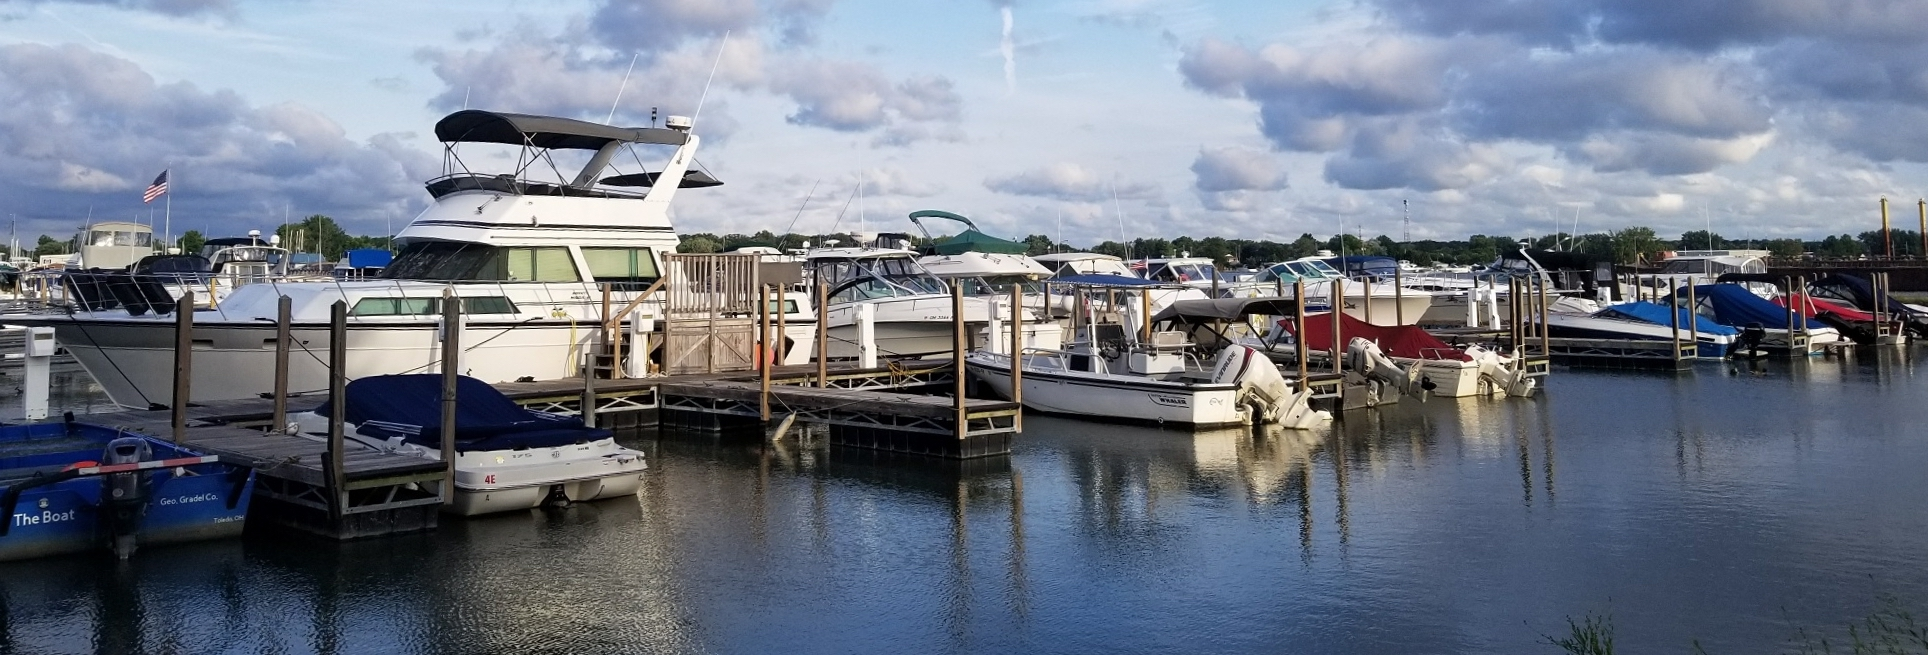 East Harbor State Park Marina dock view | Snag-A-Slip